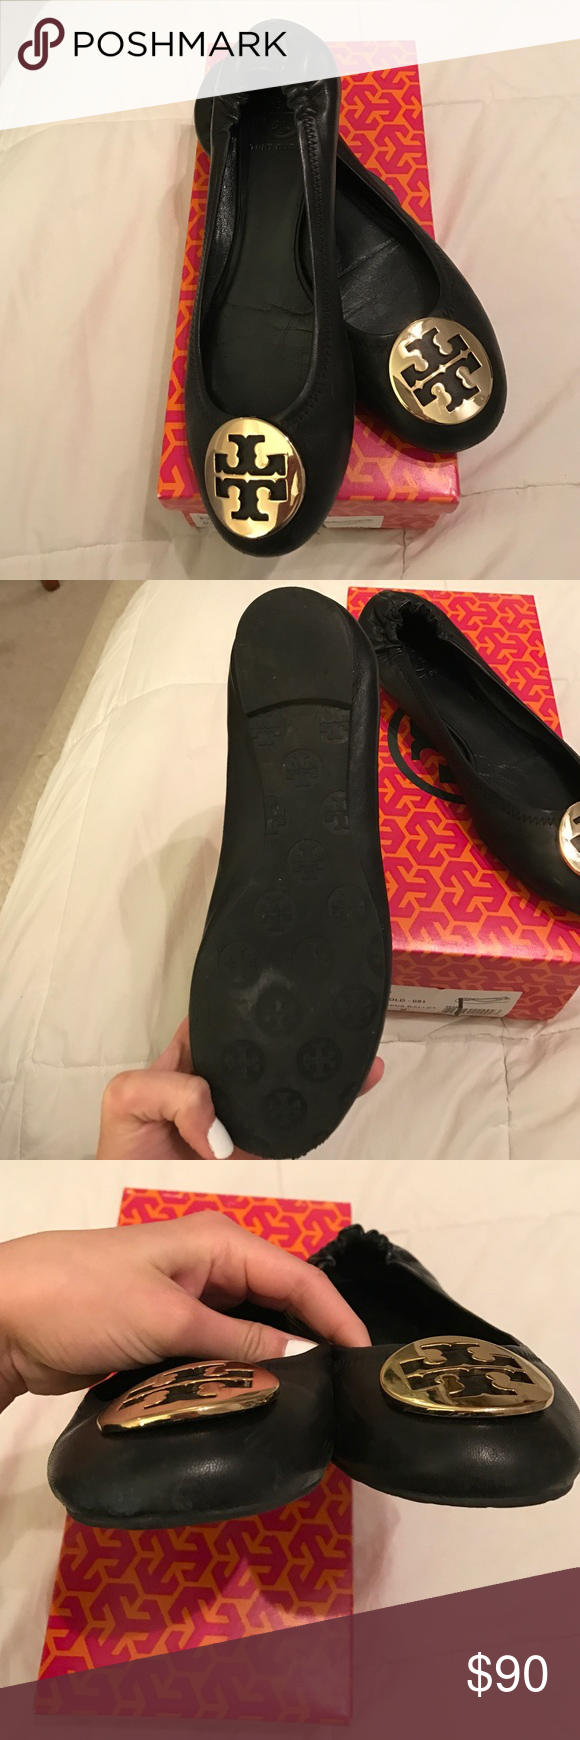 Tory Burch Classic Reva Ballet Flats Tory Burch Reva Flats size 8. These flats are in great condition only worn a few times! Some slight wear on the tips and bottoms as pictured above. Include original box. No trades. Tory Burch Shoes Flats & Loafers